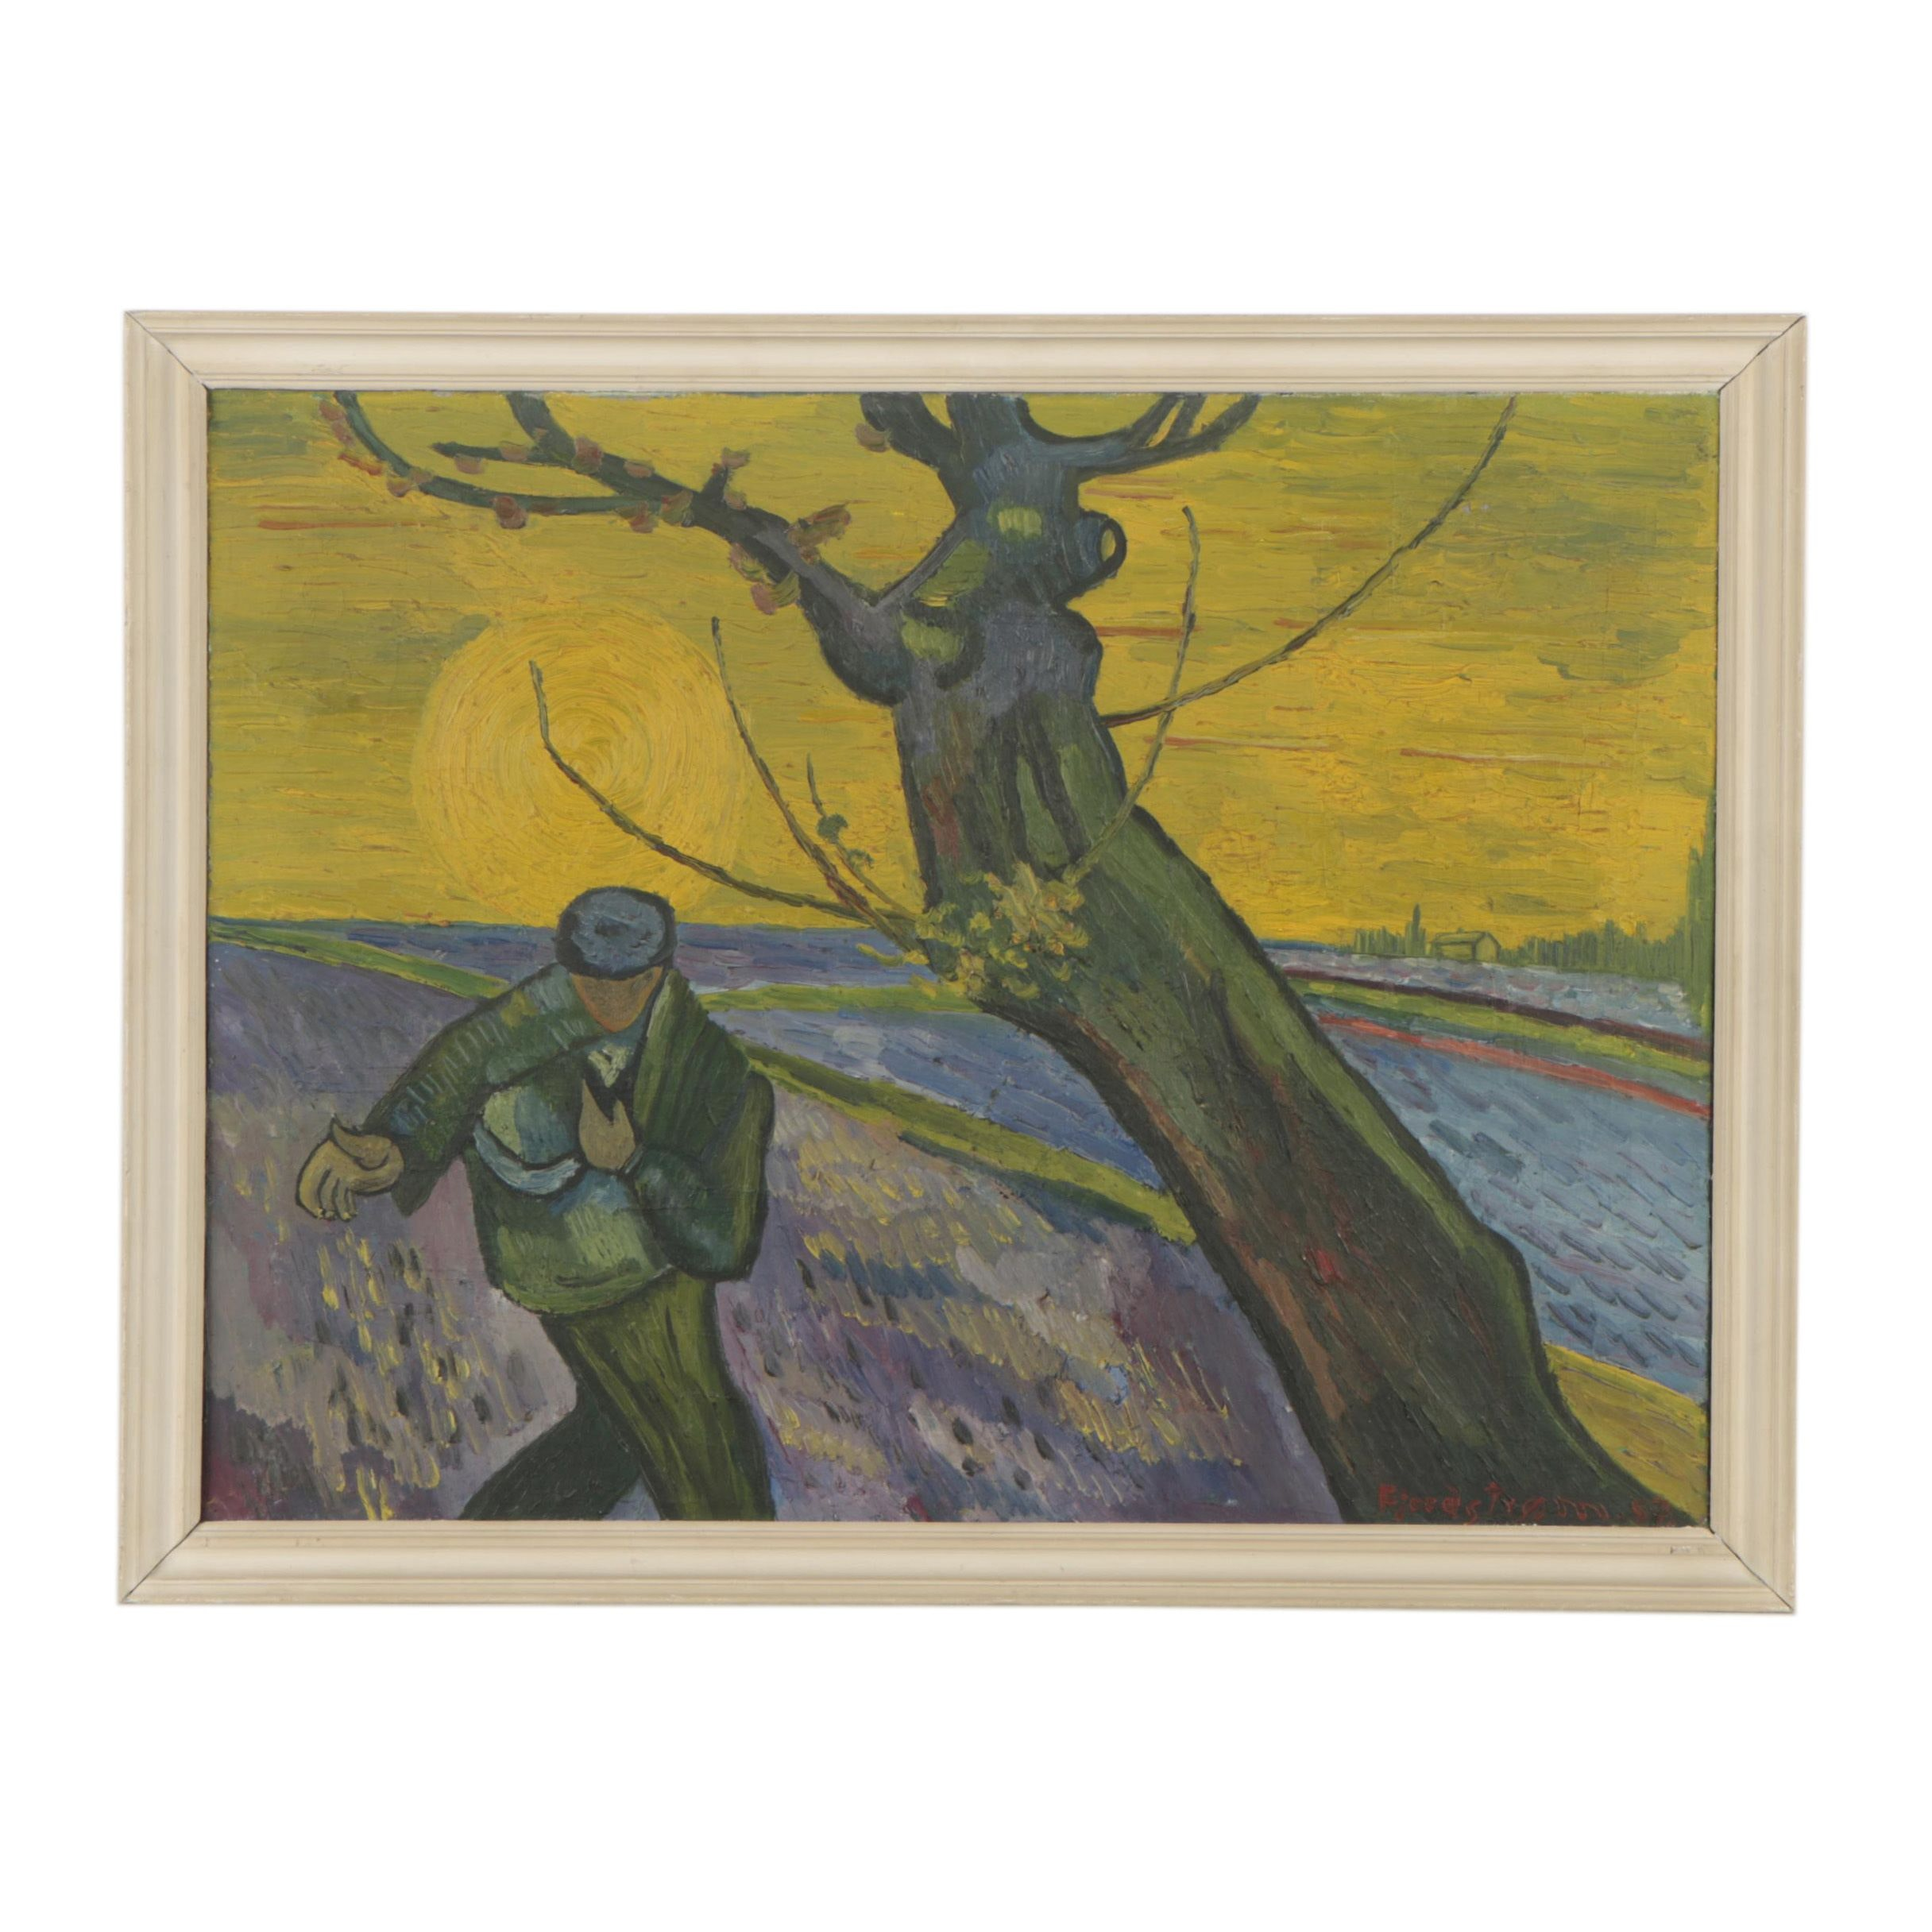 "1957 Copy Oil Painting After Van Gogh's ""The Sower"""